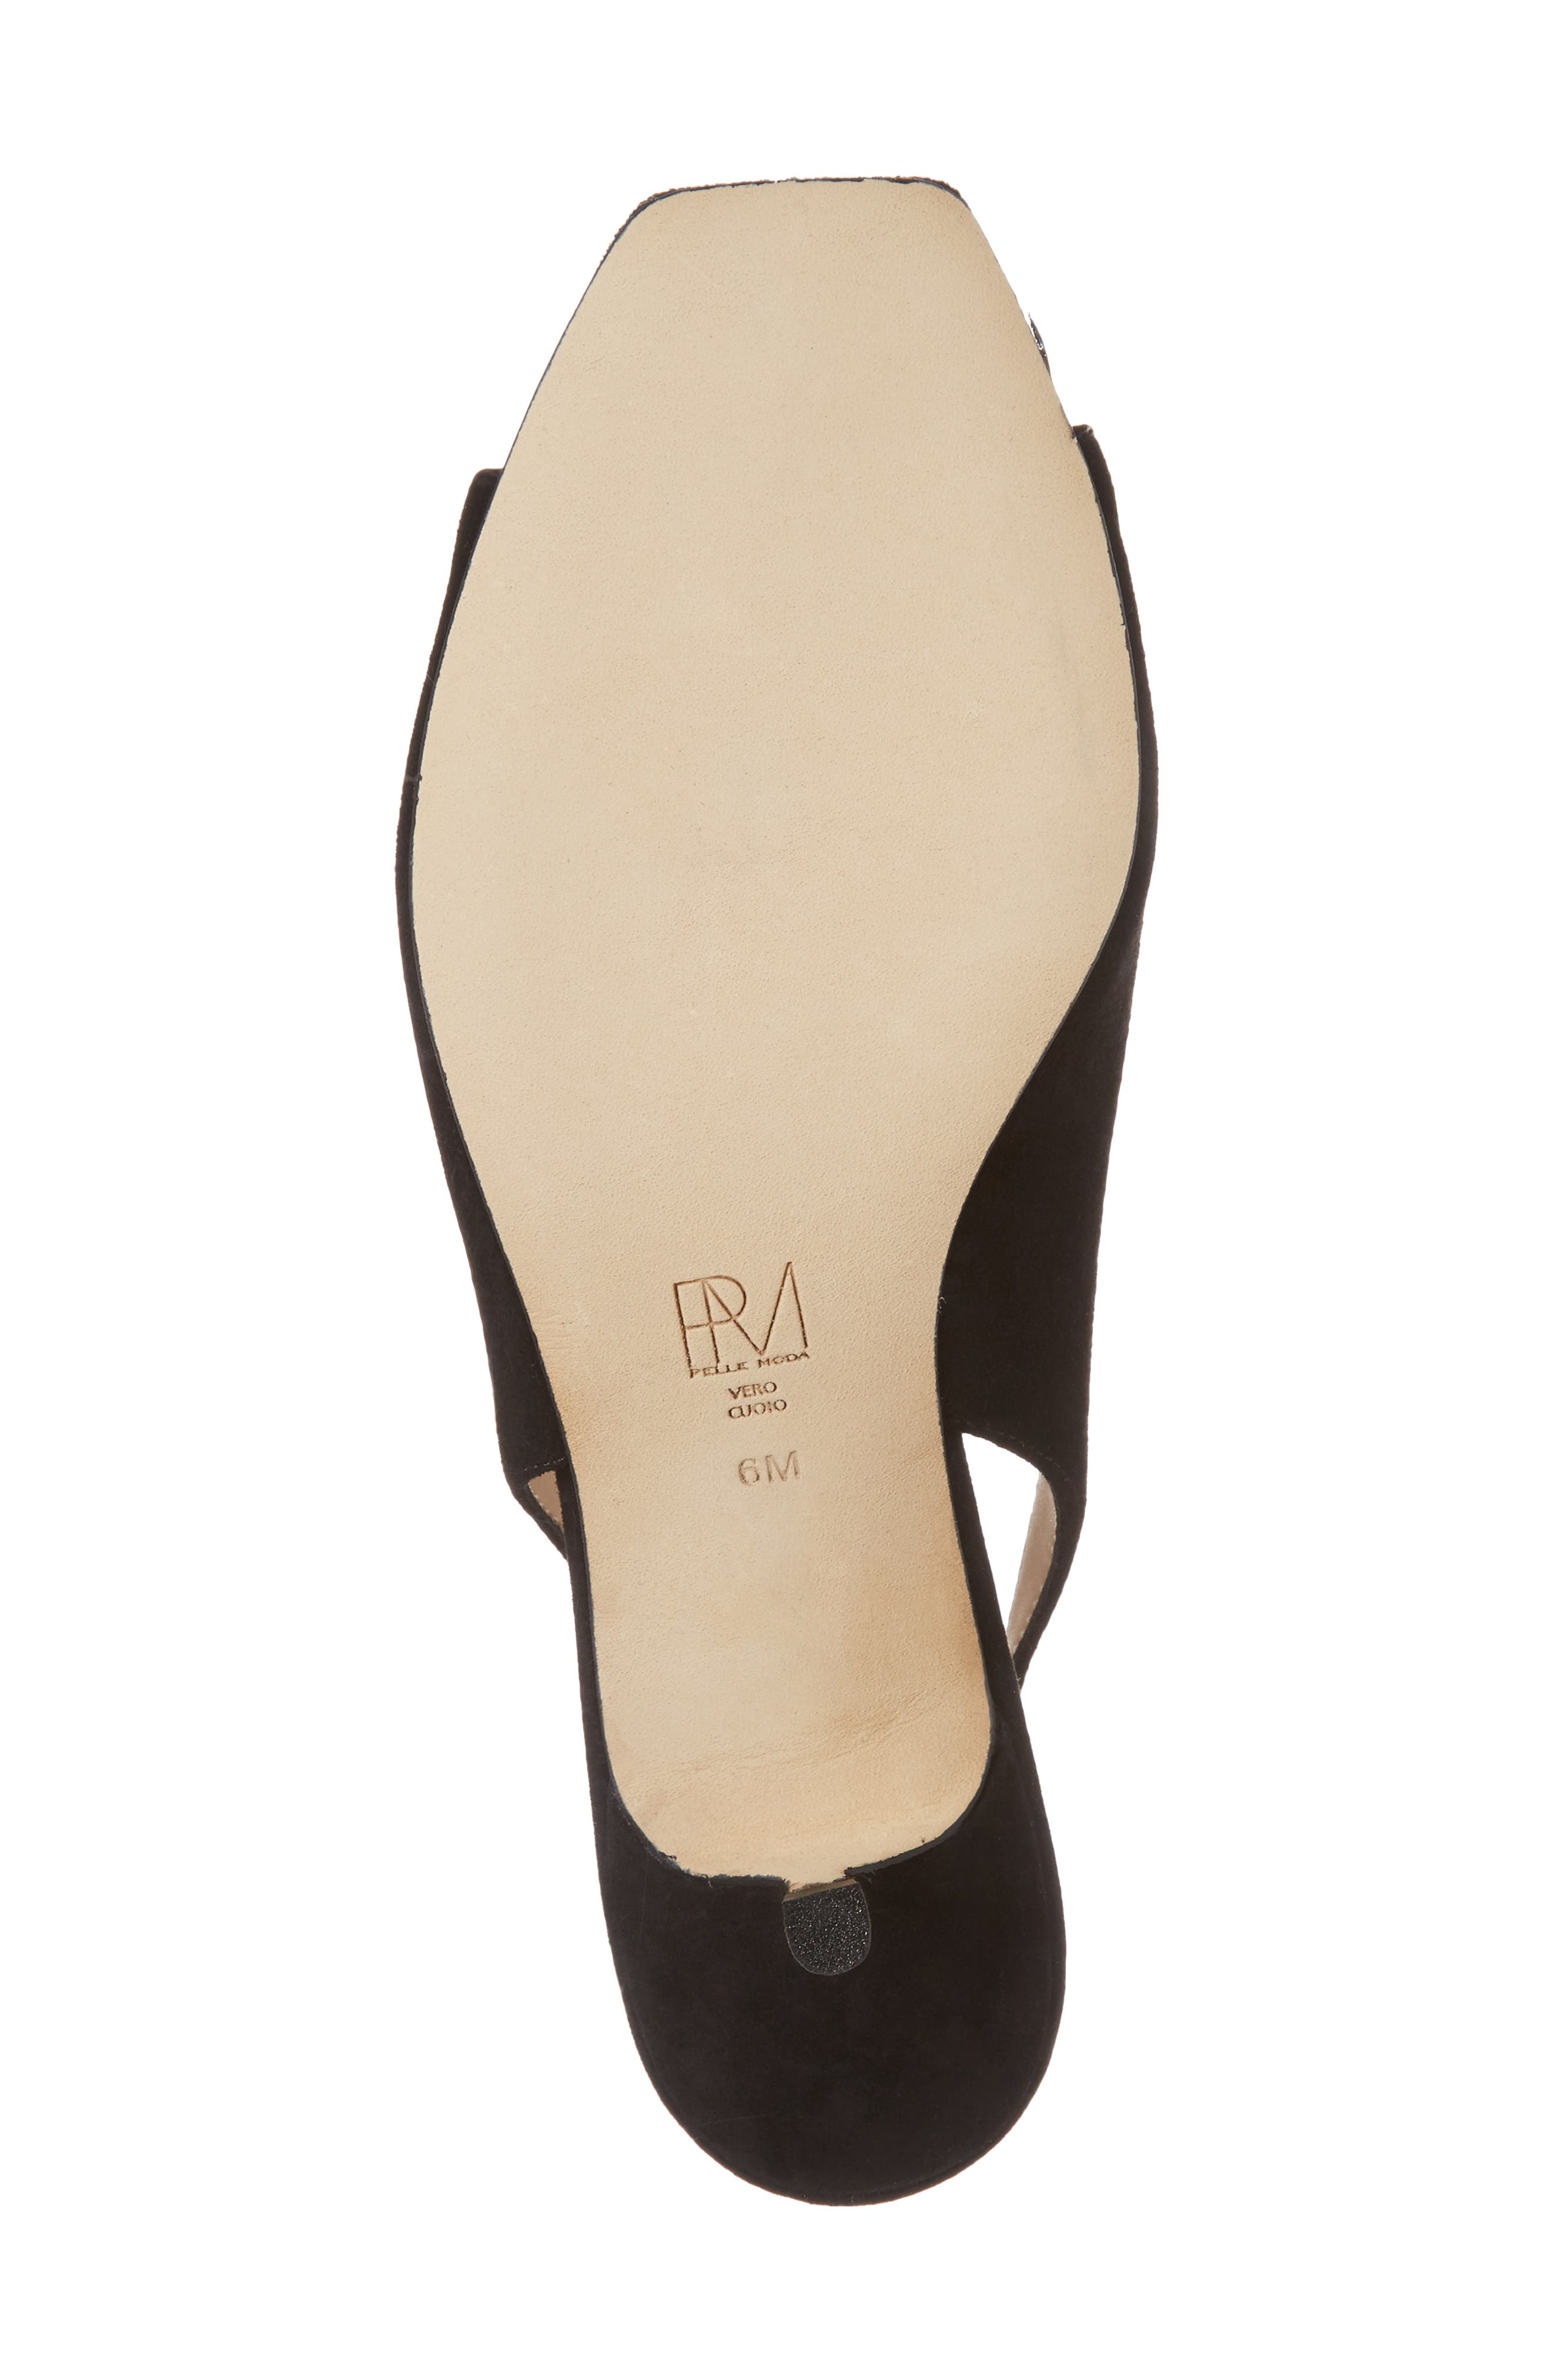 Fresca Slingback Sandal,                             Alternate thumbnail 6, color,                             Black Suede